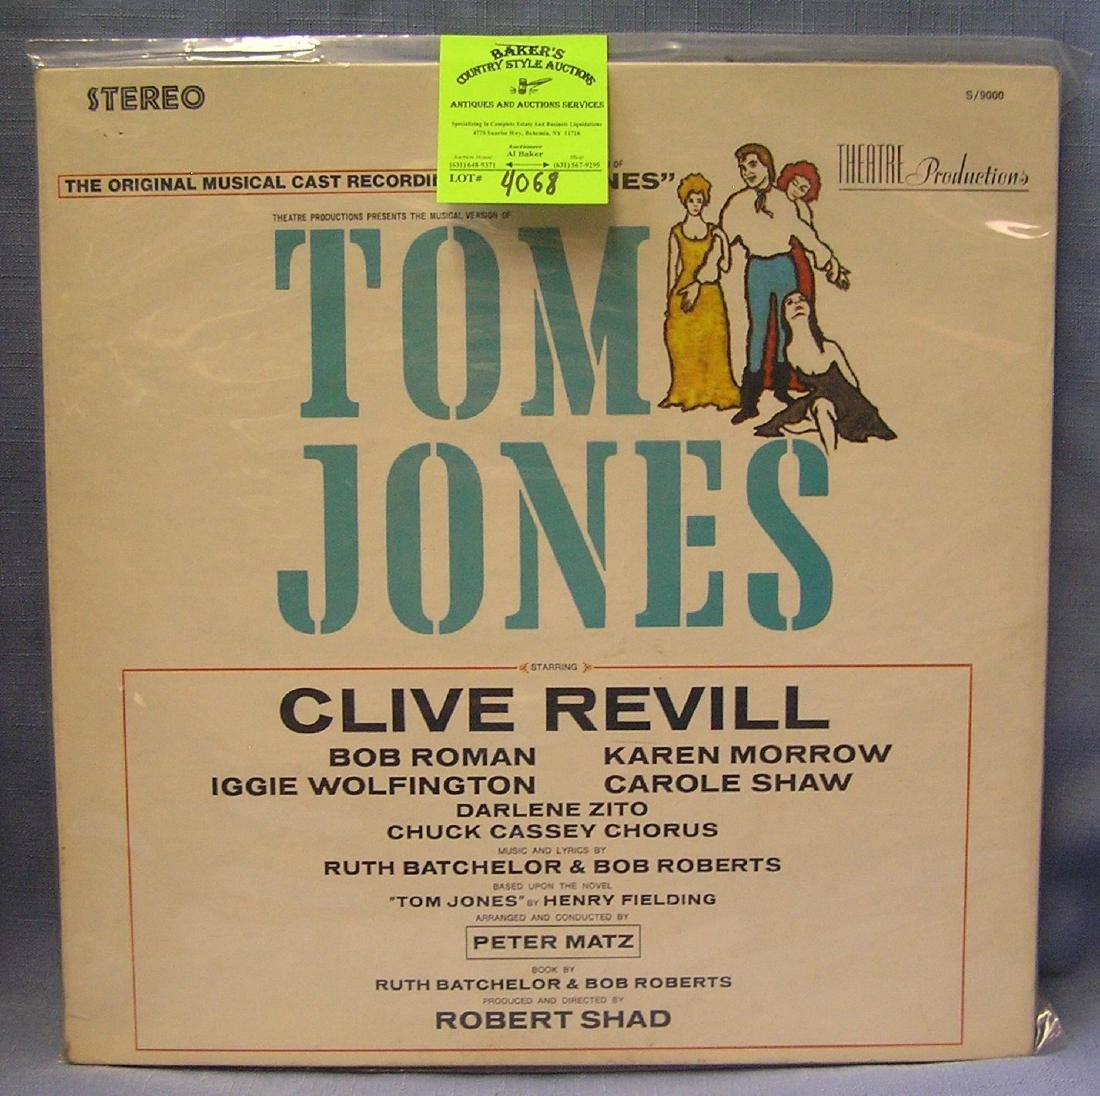 Vintage Tom Jones record album